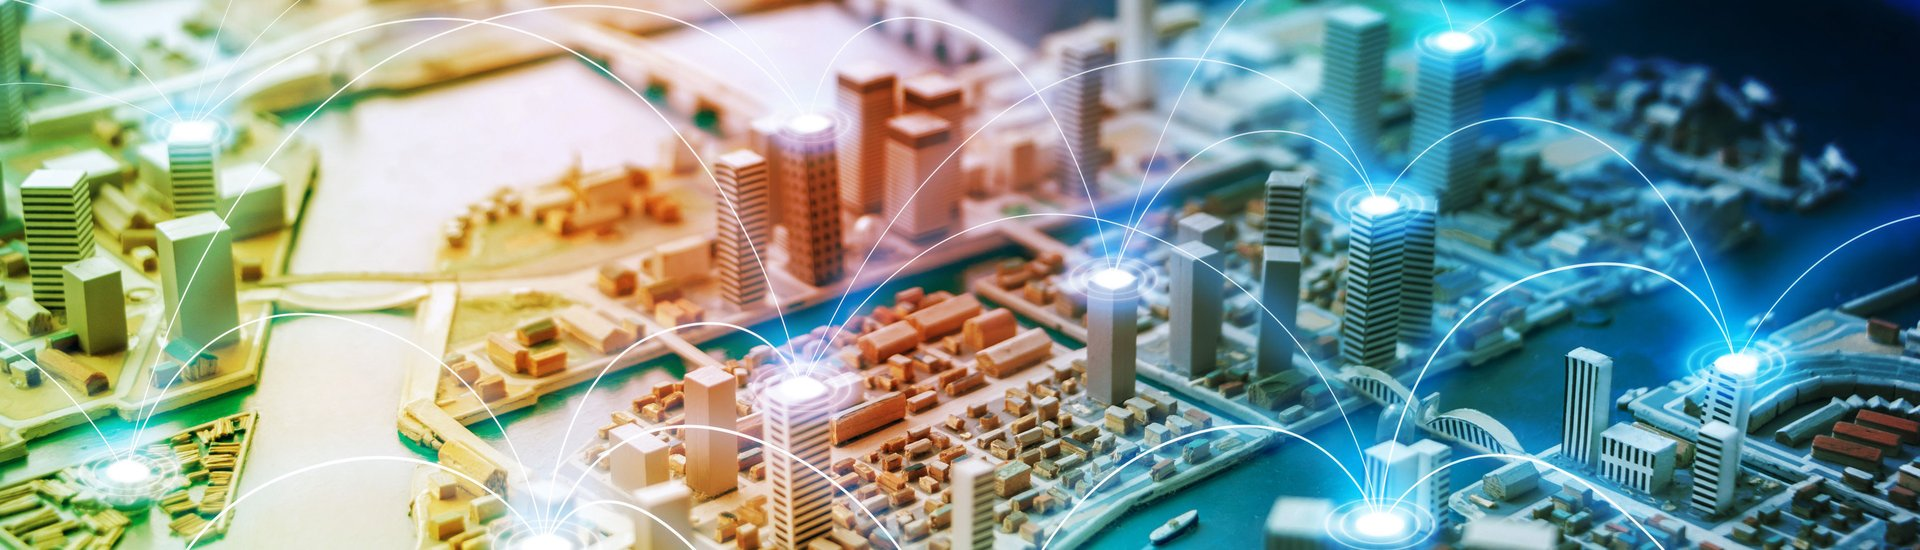 Smart city and communication network concept, © istock.com/metamorworks